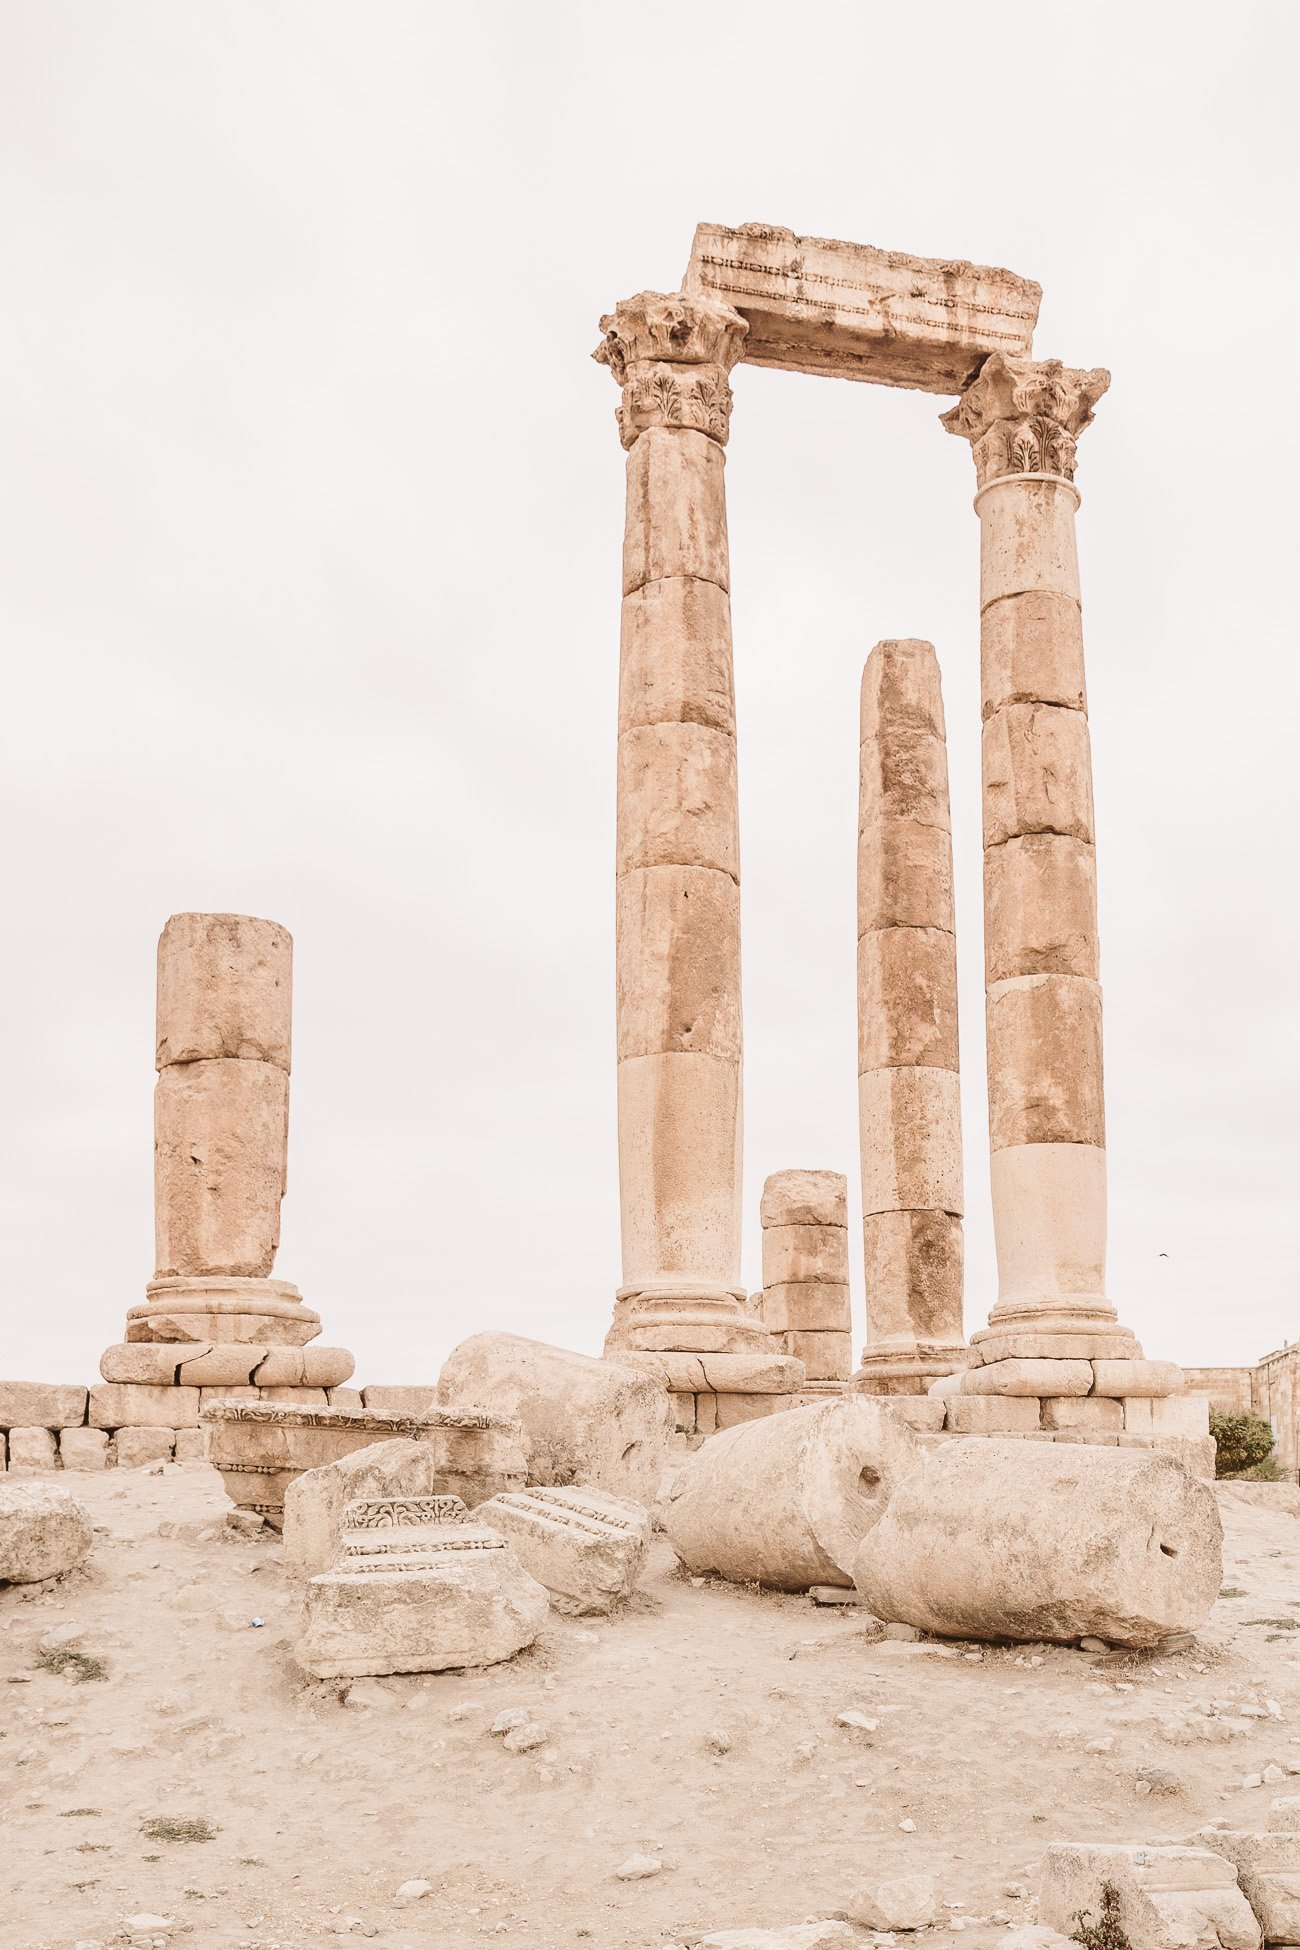 A visit of the Amman Citadel during 24 hours in Amman